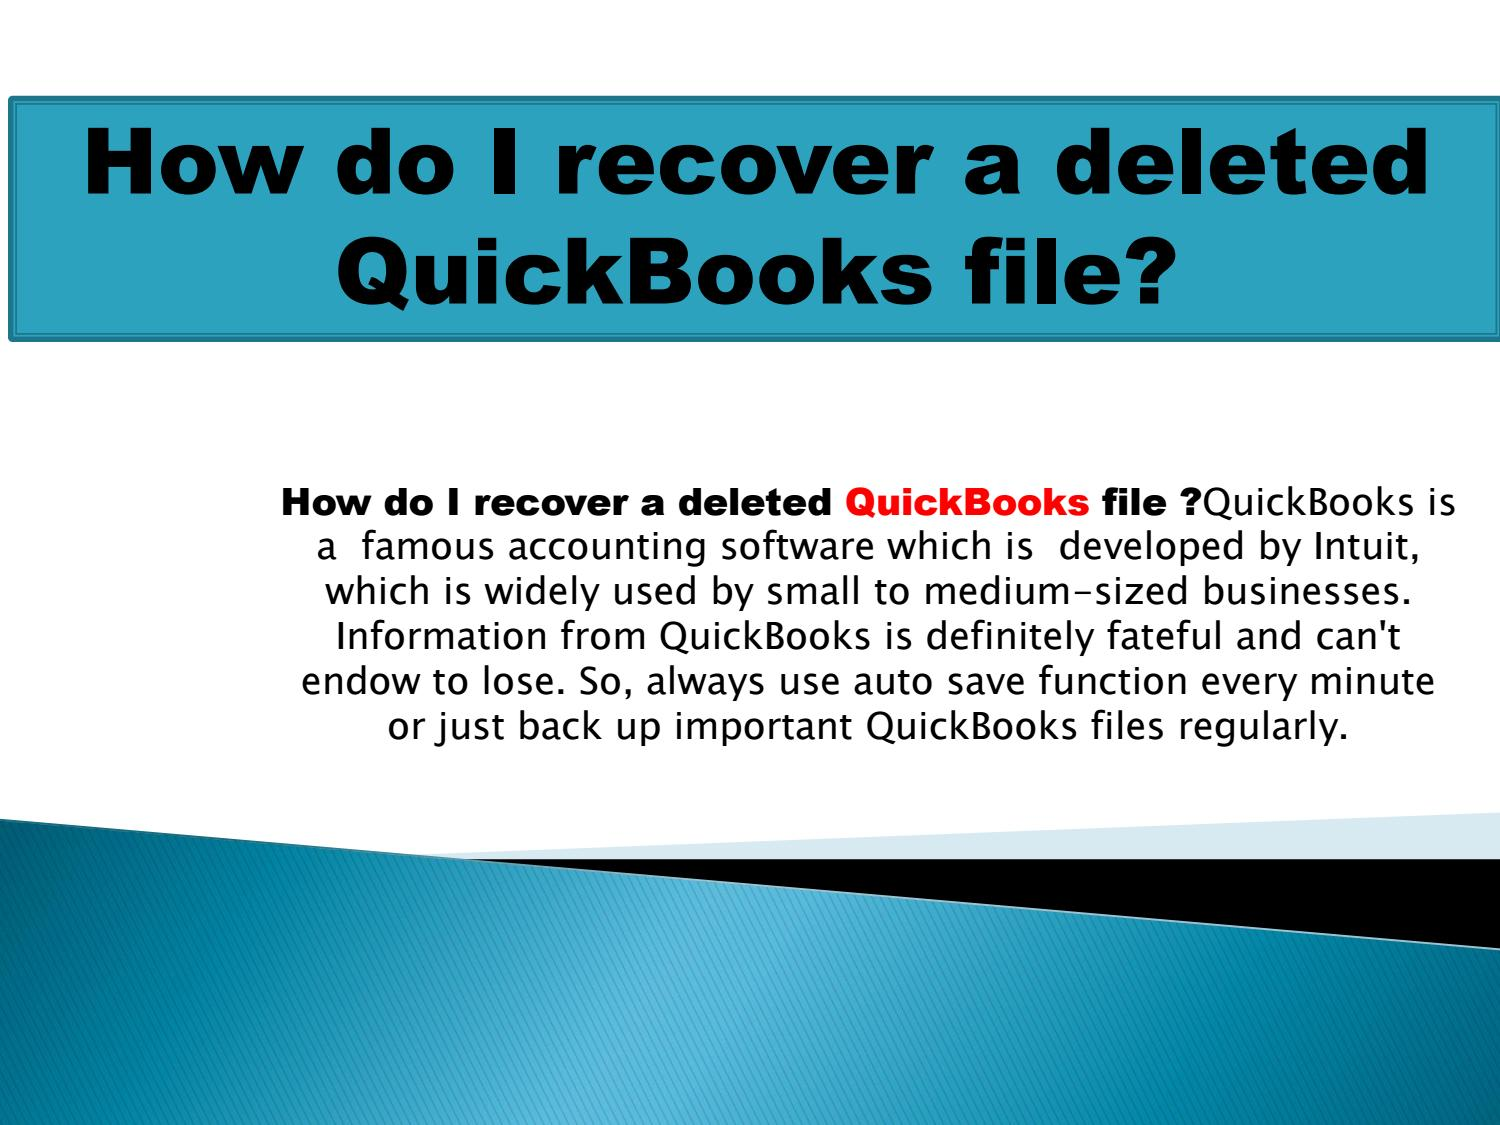 How do I recover a deleted QuickBooks file 1-888-410-9071 by